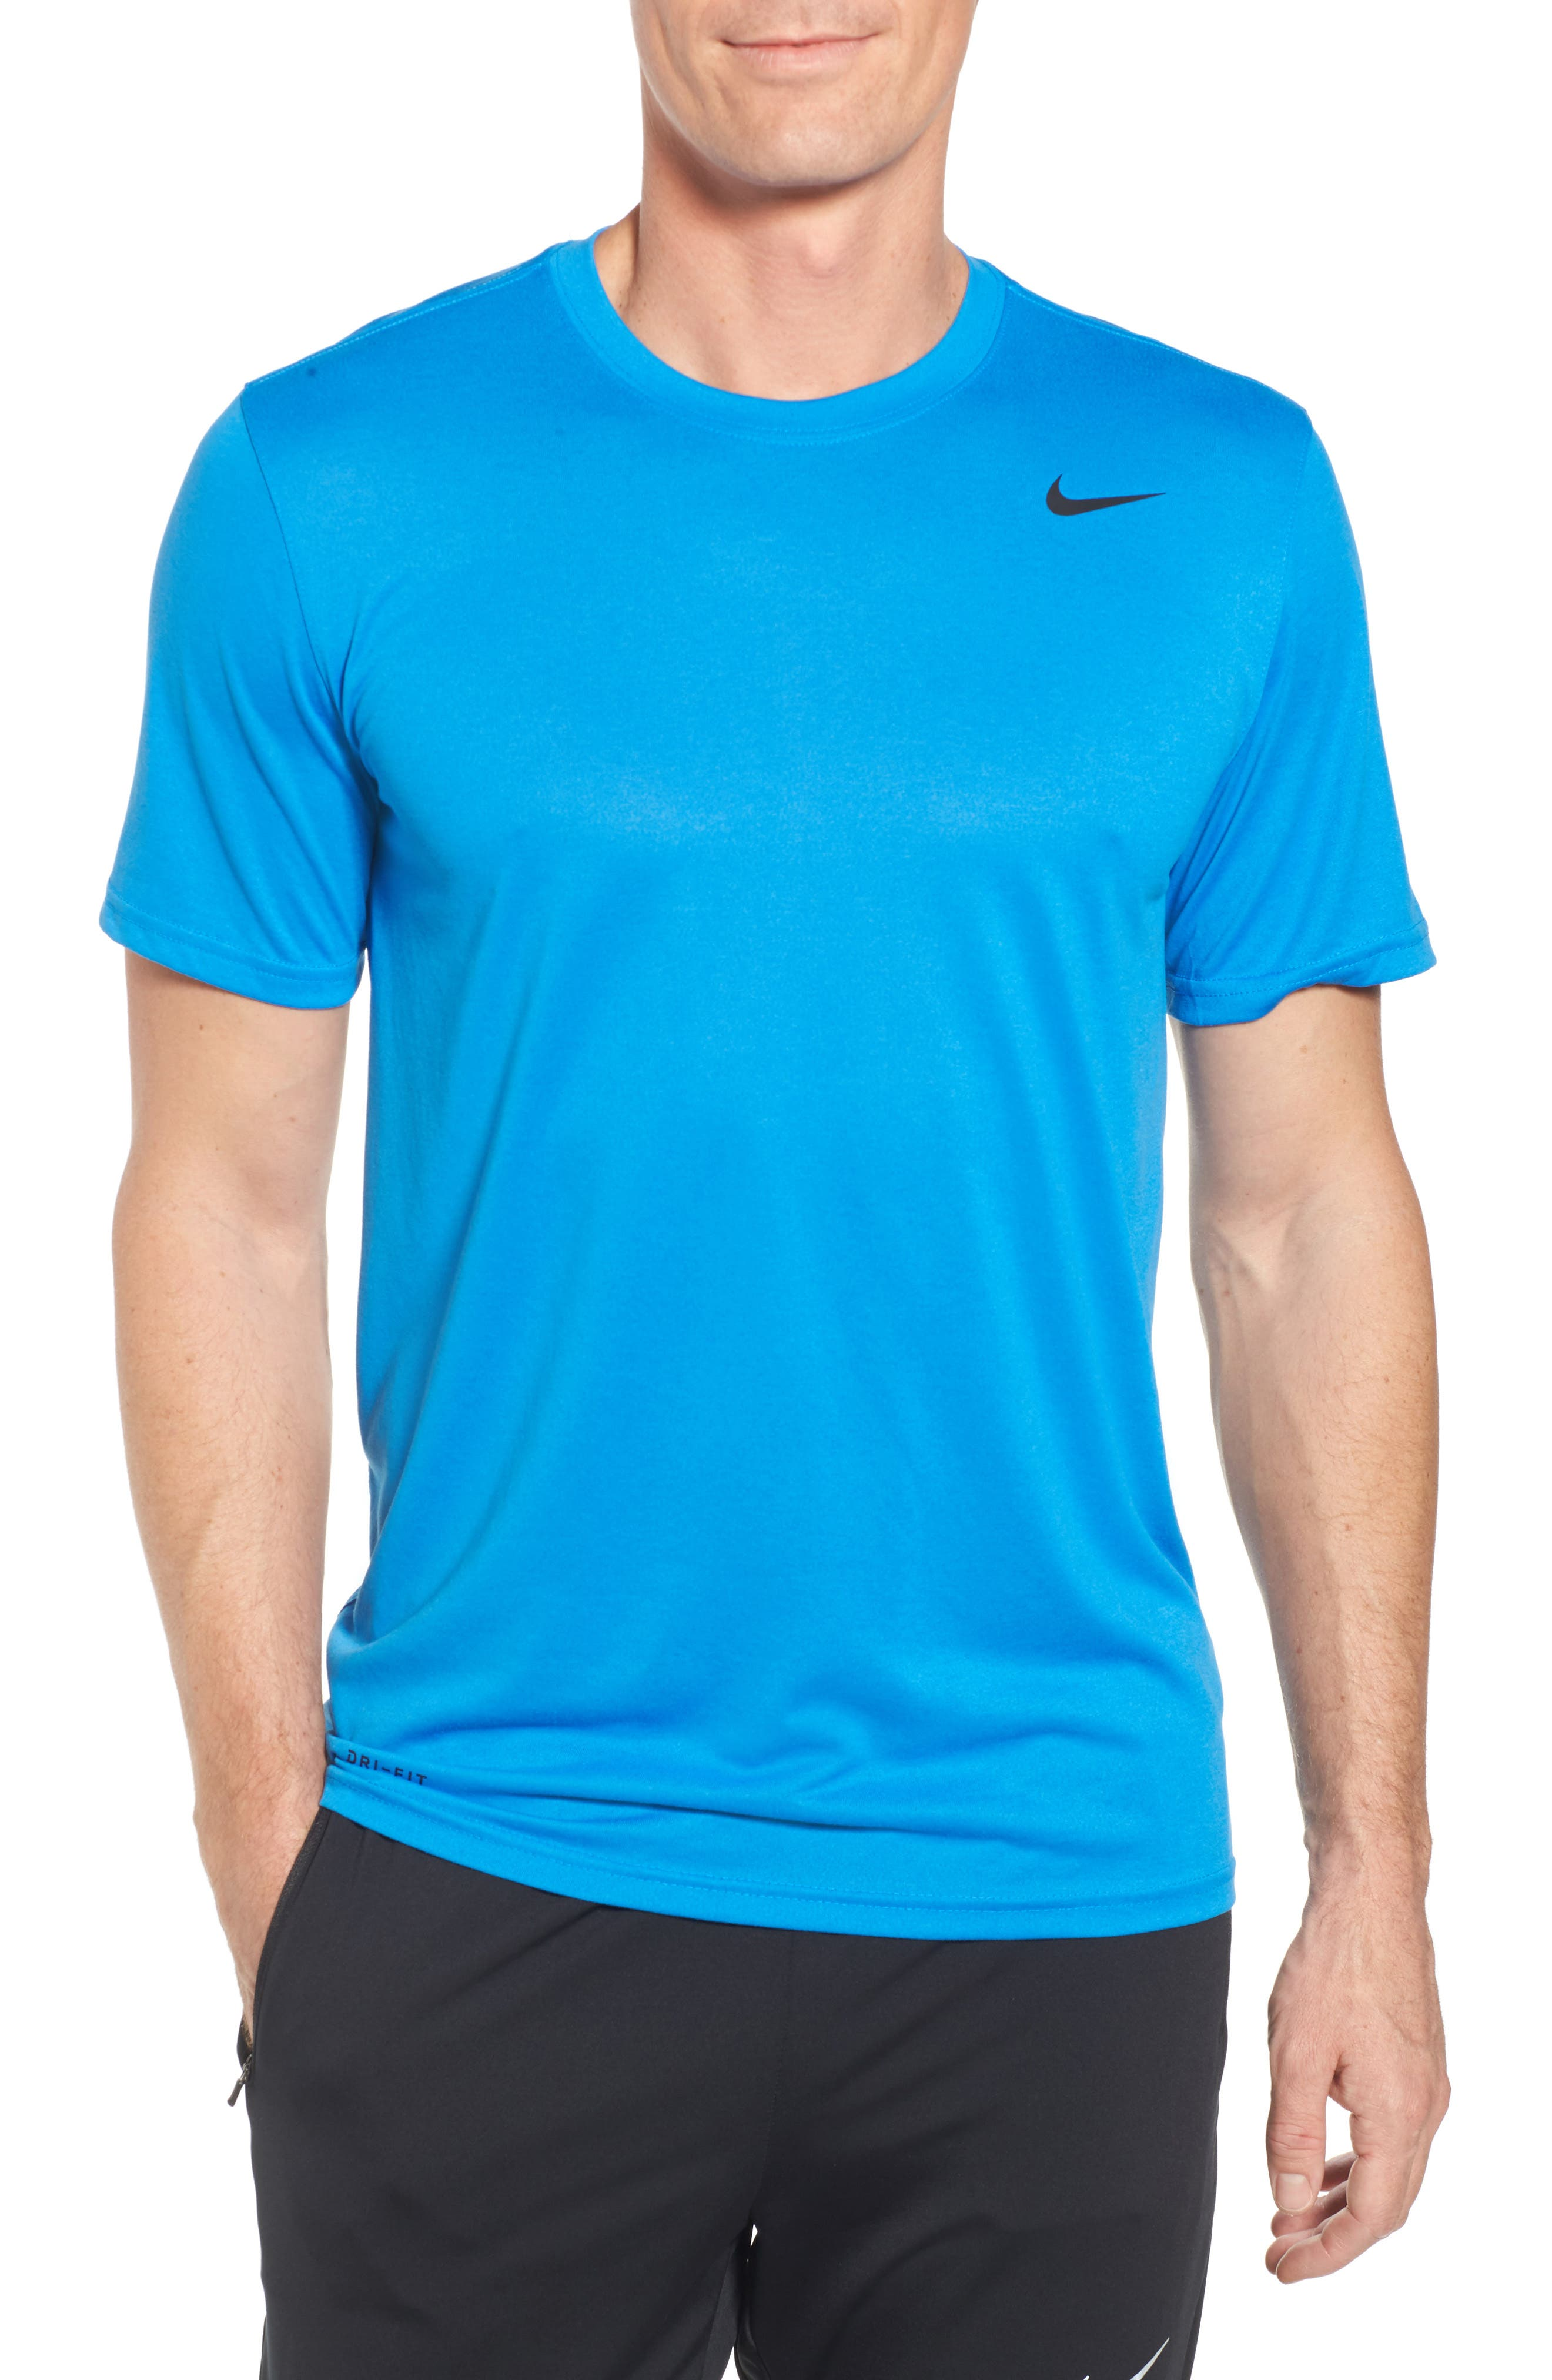 Nike 'Legend 2.0' Dri-FIT Training T-Shirt